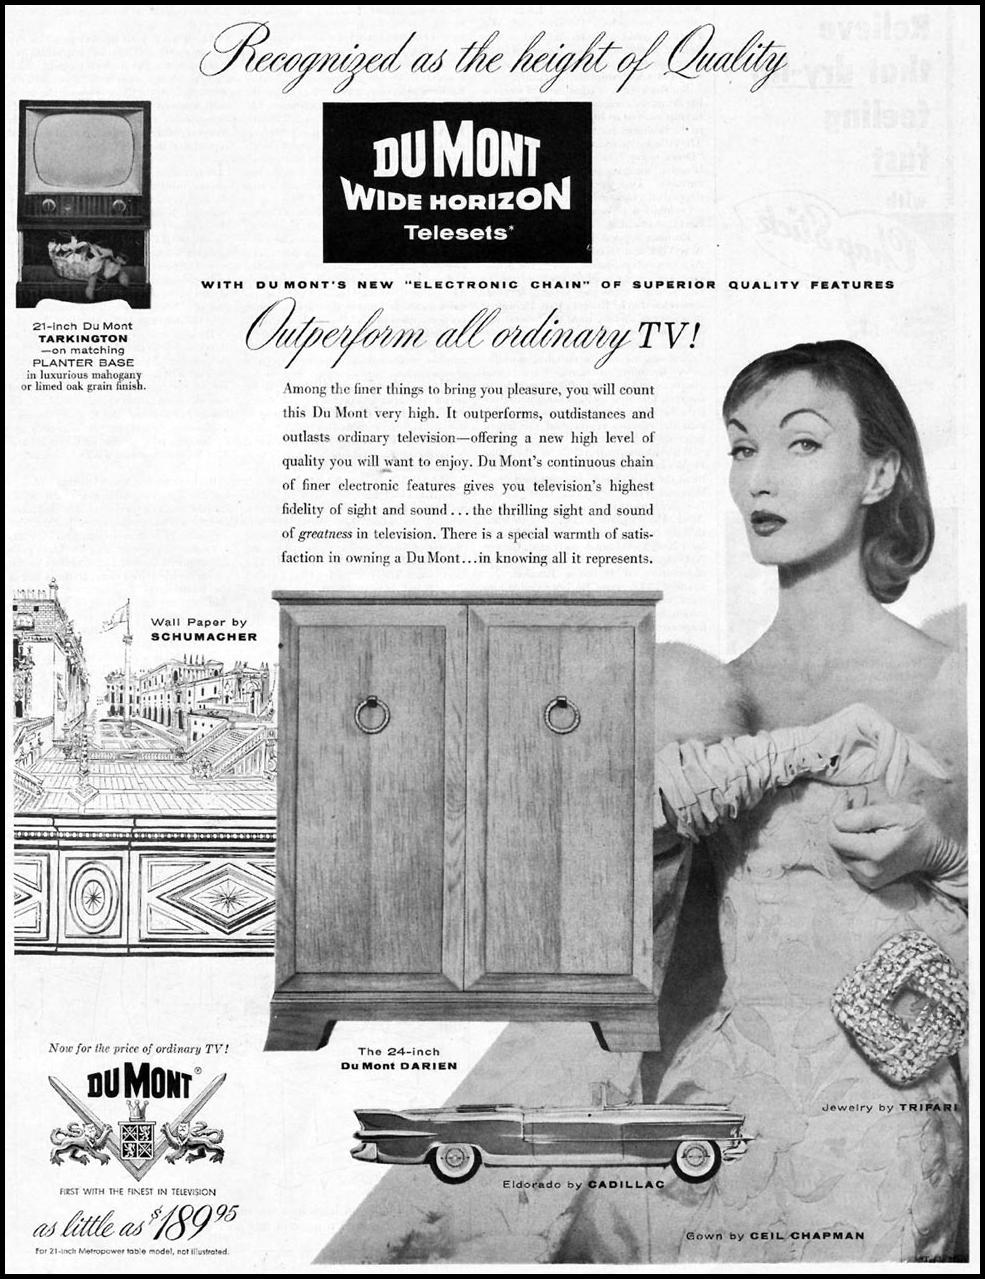 DU MONT WIDE HORIZON TELESETS SATURDAY EVENING POST 10/29/1955 p. 89